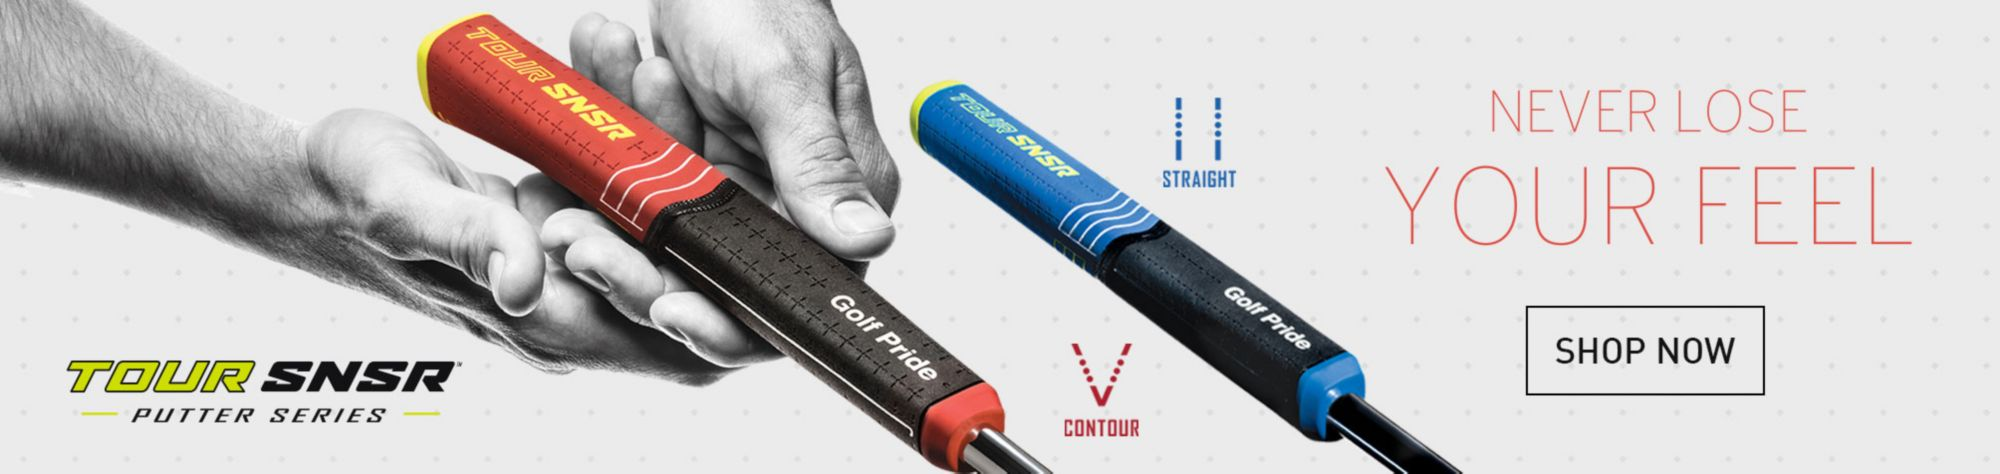 Shop Golf Pride Tour SNSR Grips